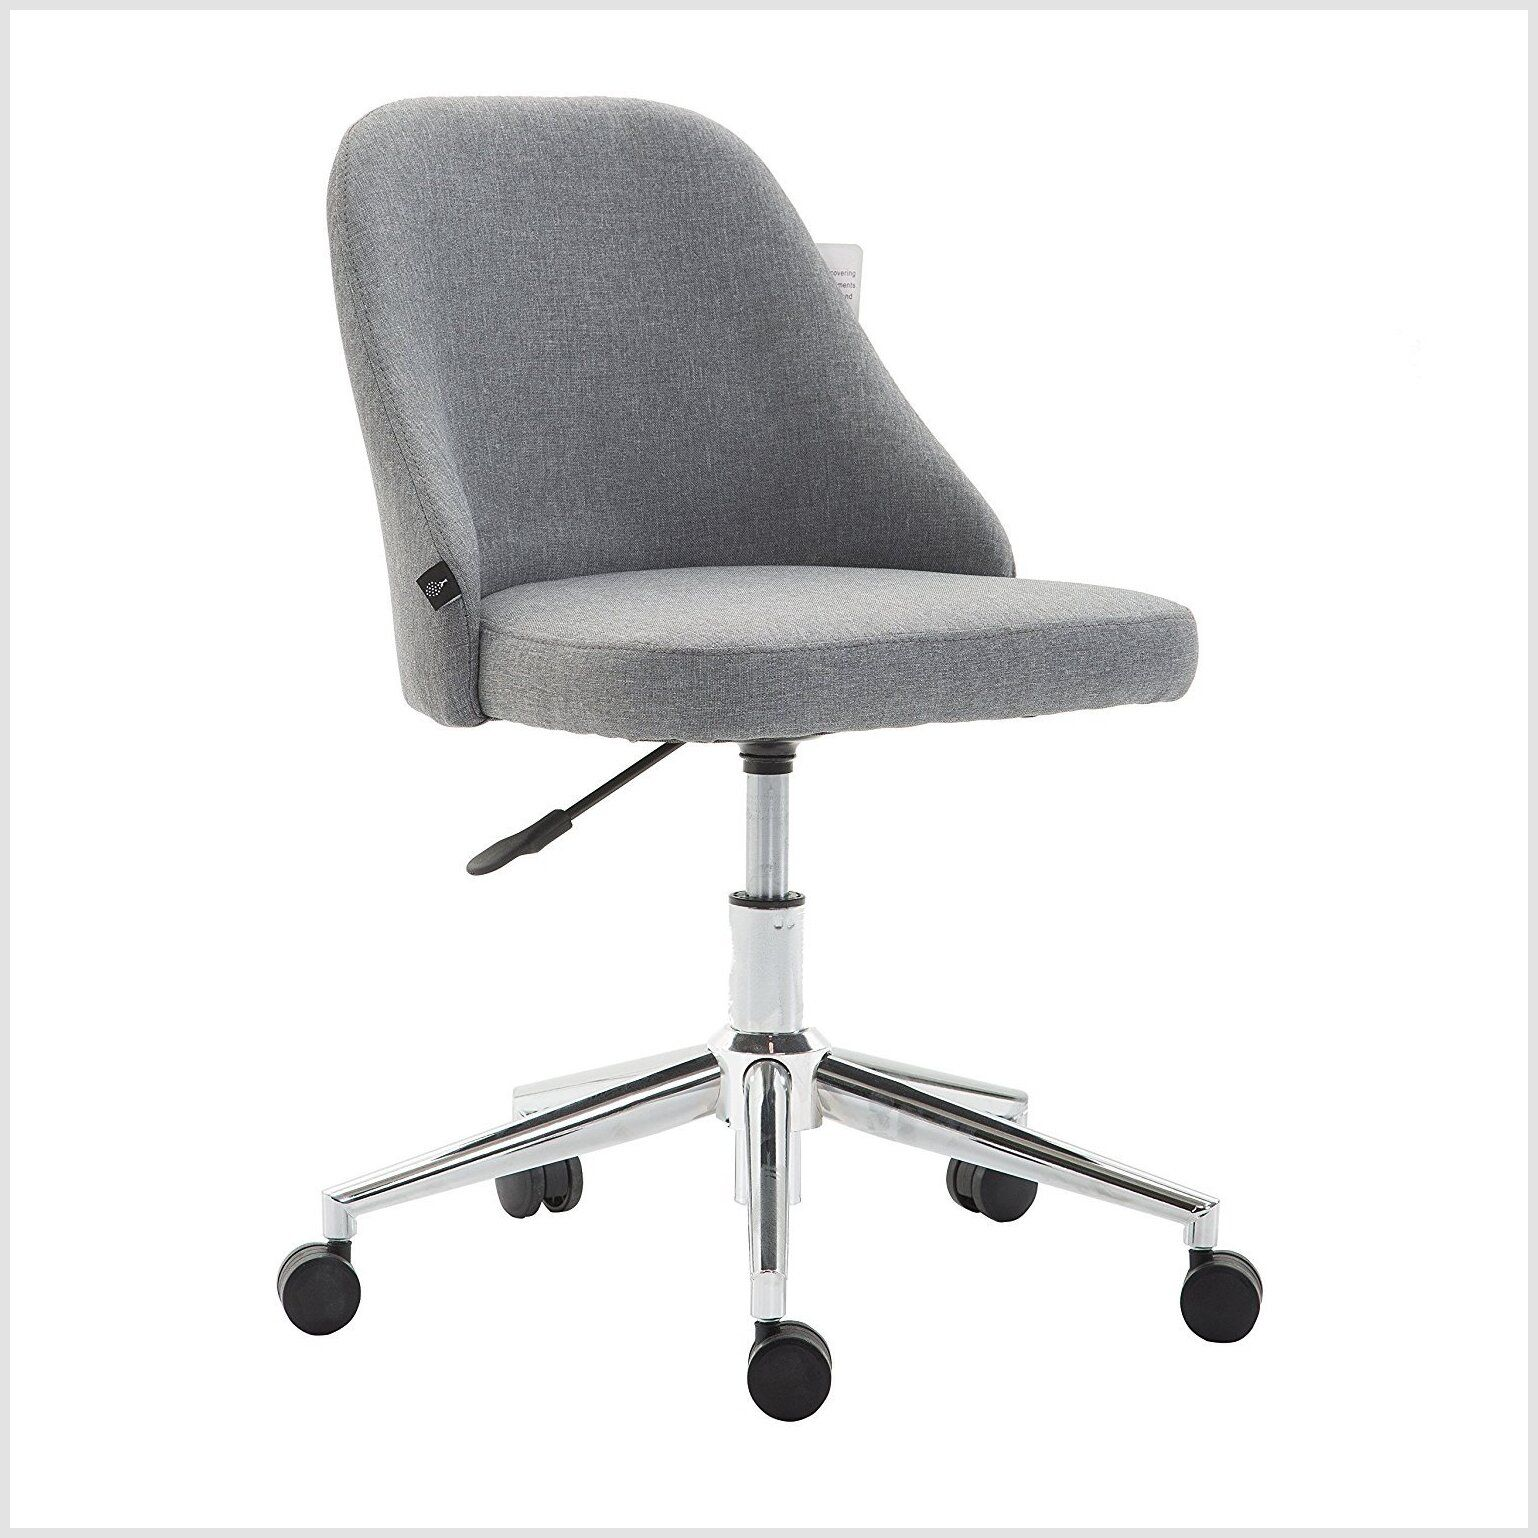 70 Reference Of Swivel Chair Fabric Options Swivel Chair Chair Fabric Swivel Office Chair